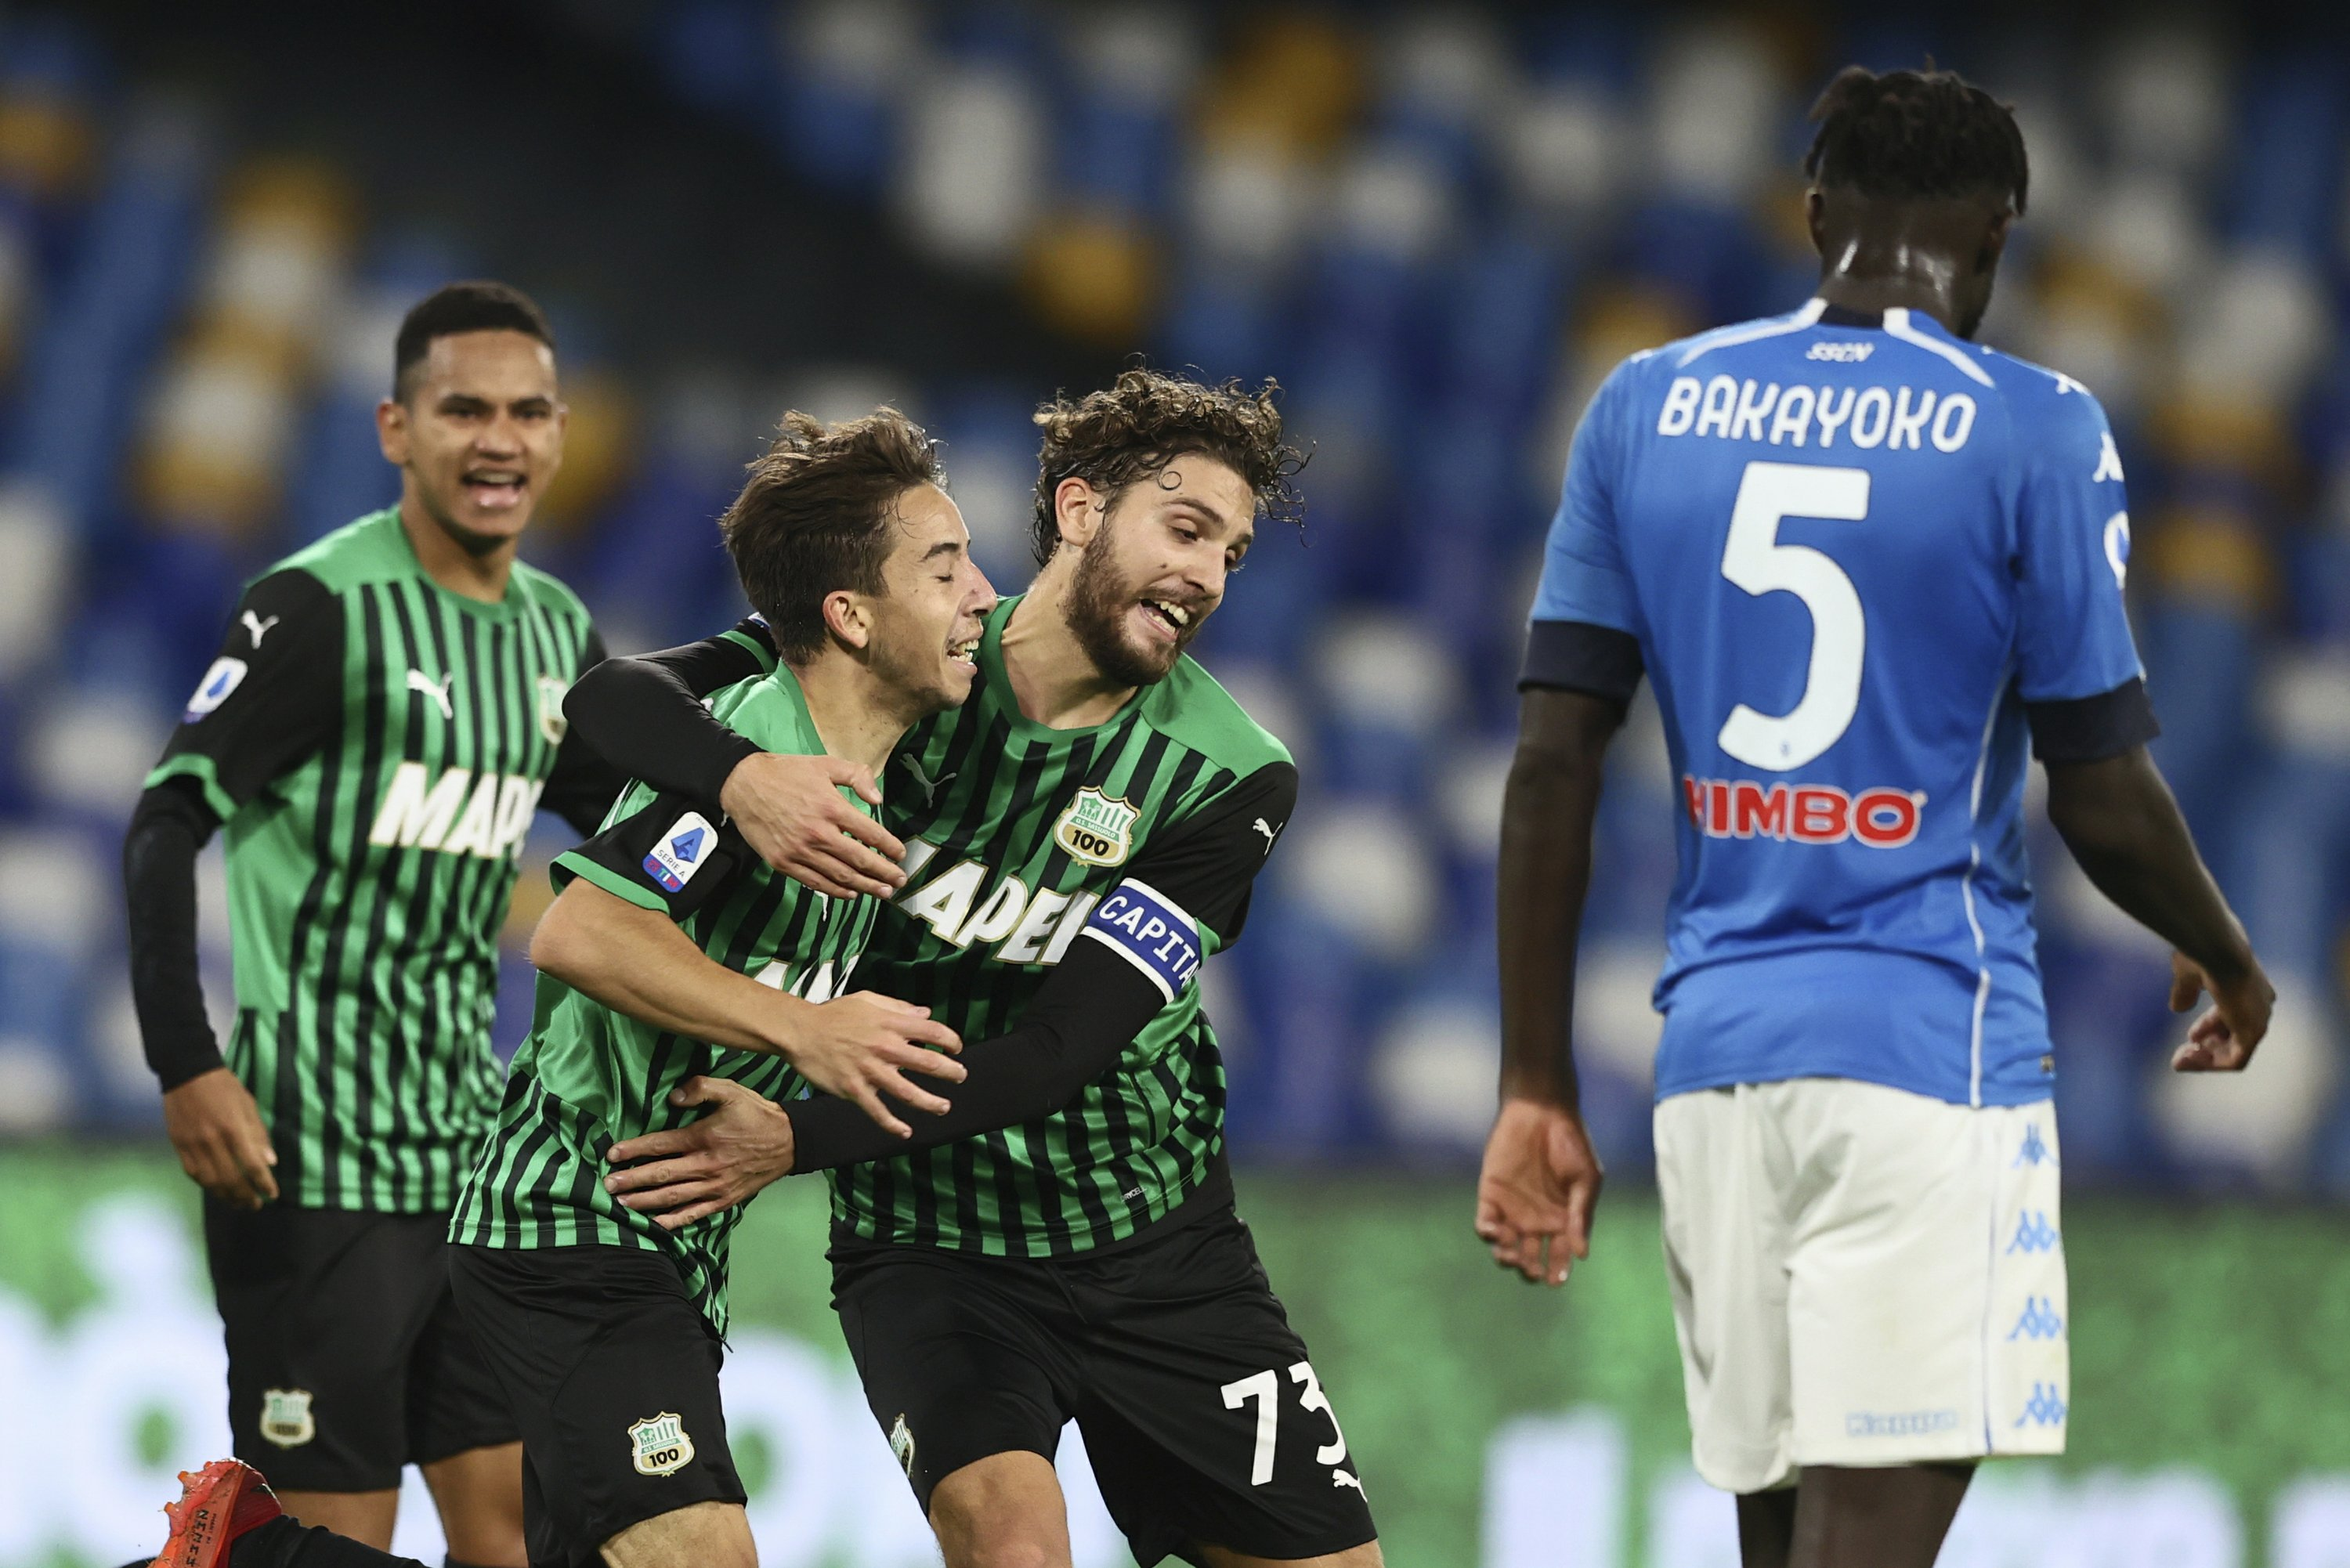 Another Atalanta: Sassuolo is Italy's next surprise